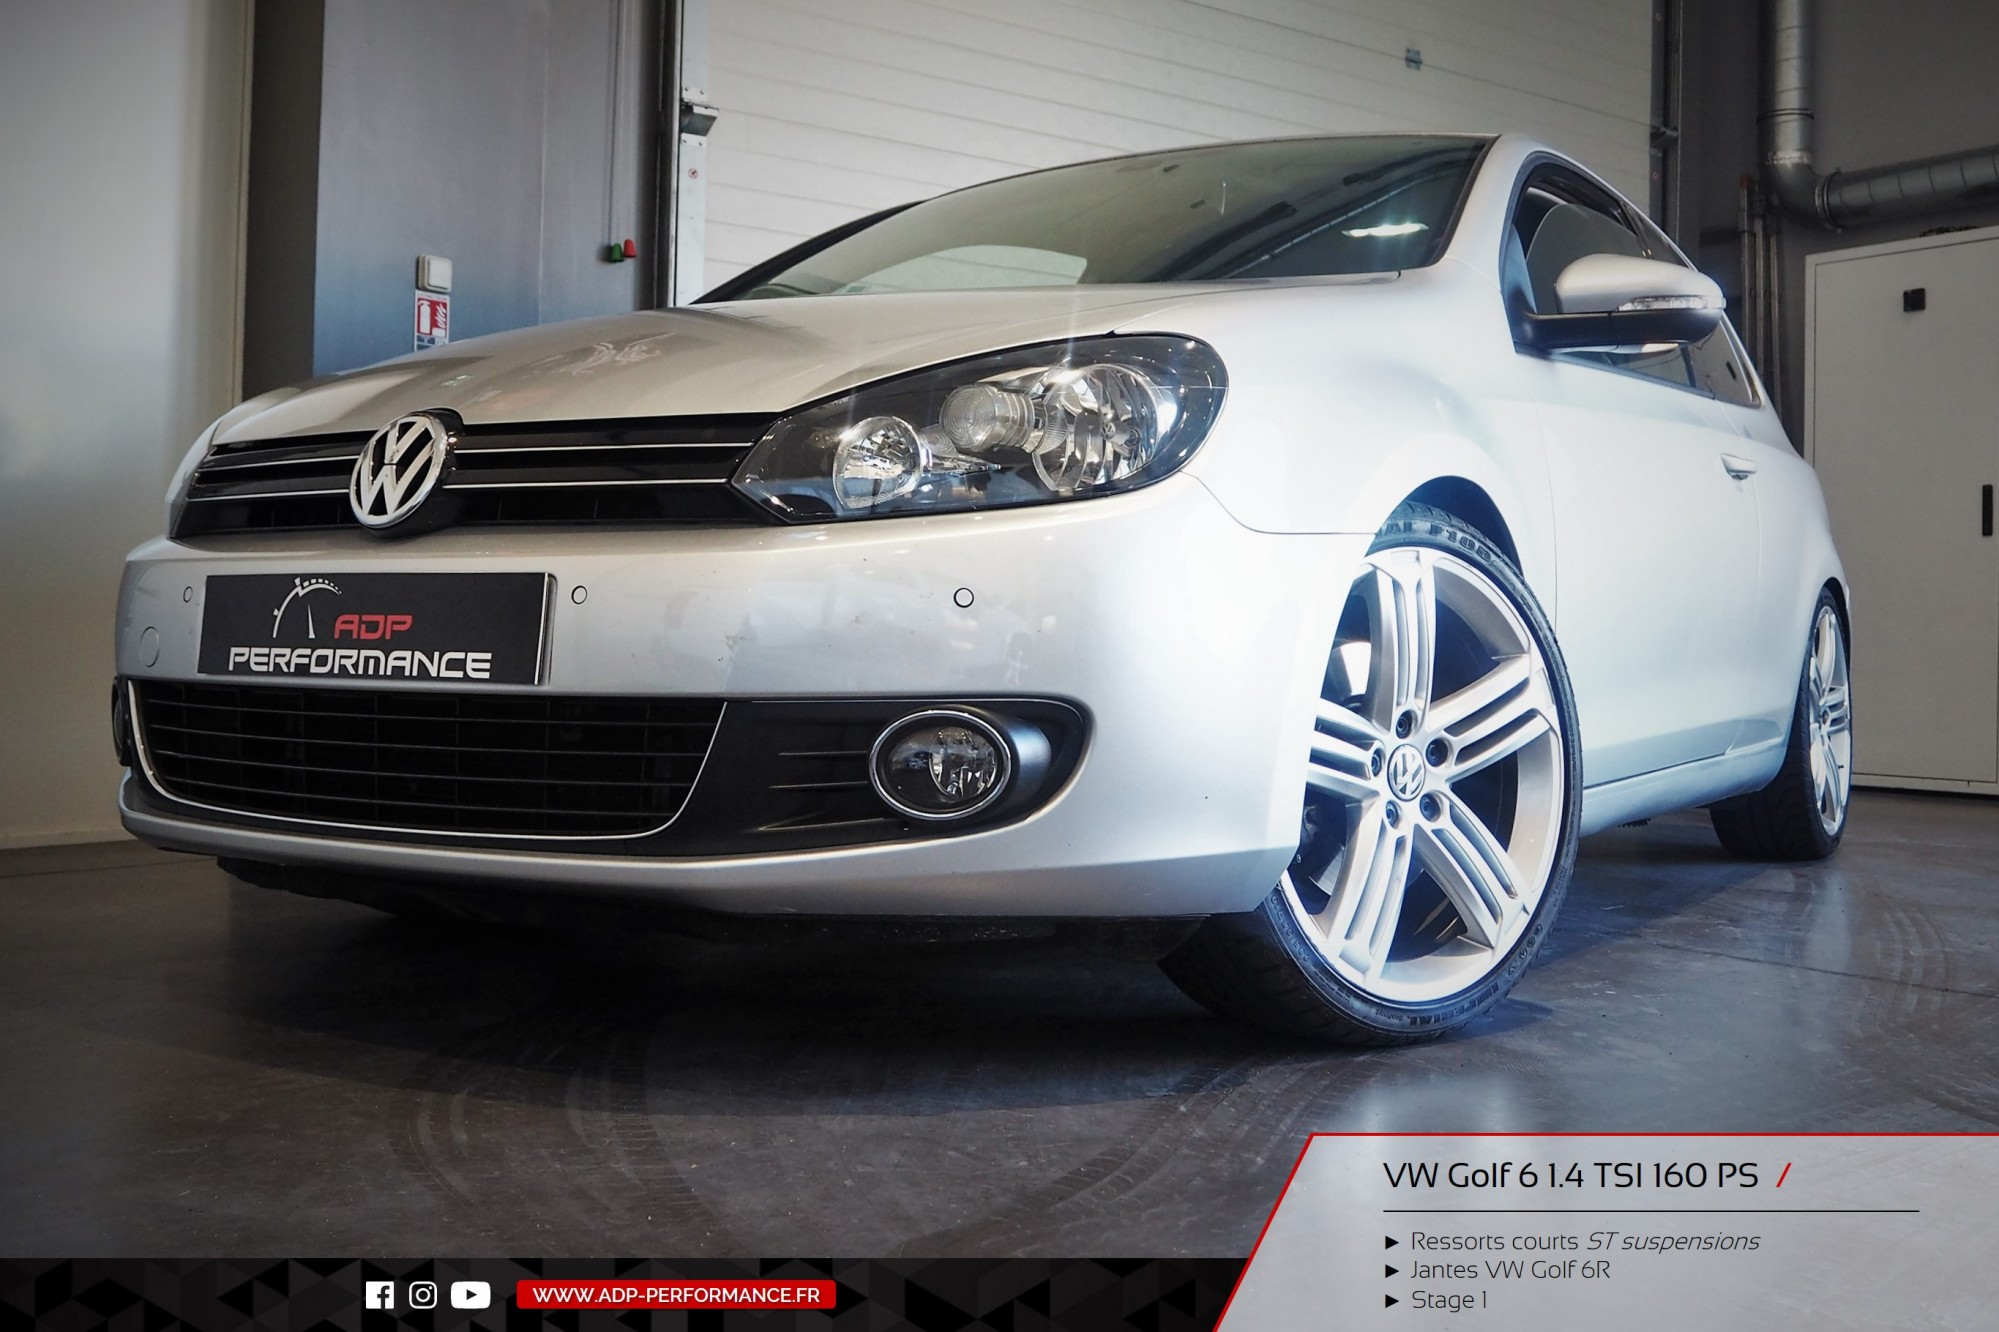 reprogrammation moteur personnalisation vw golf 6 nimes realisations reprogrammation auto. Black Bedroom Furniture Sets. Home Design Ideas